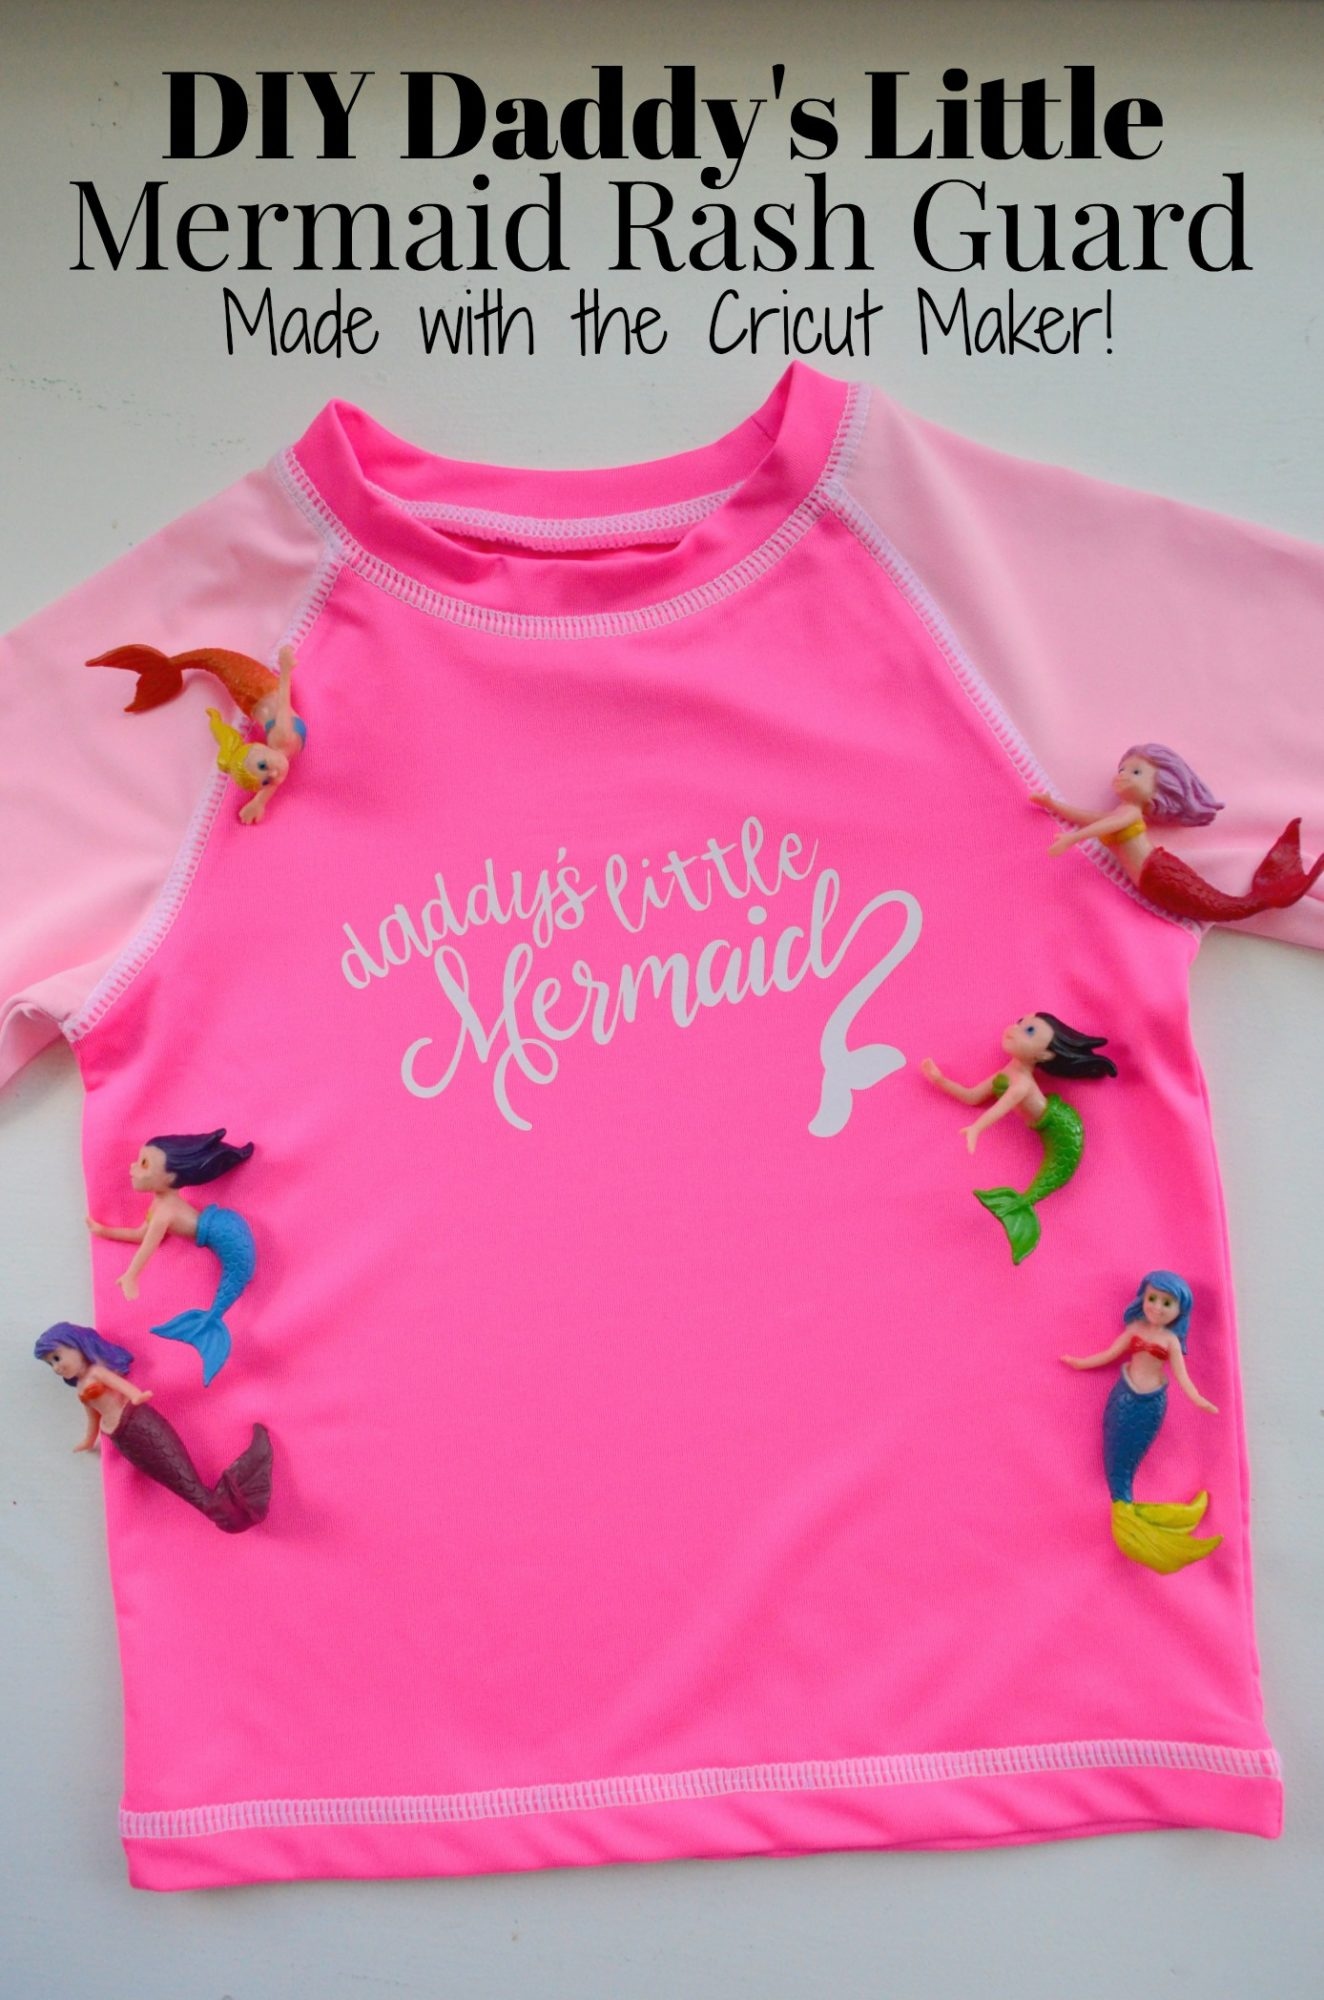 DIY Daddy's Little Mermaid Rash Guard Made with Cricut Maker!